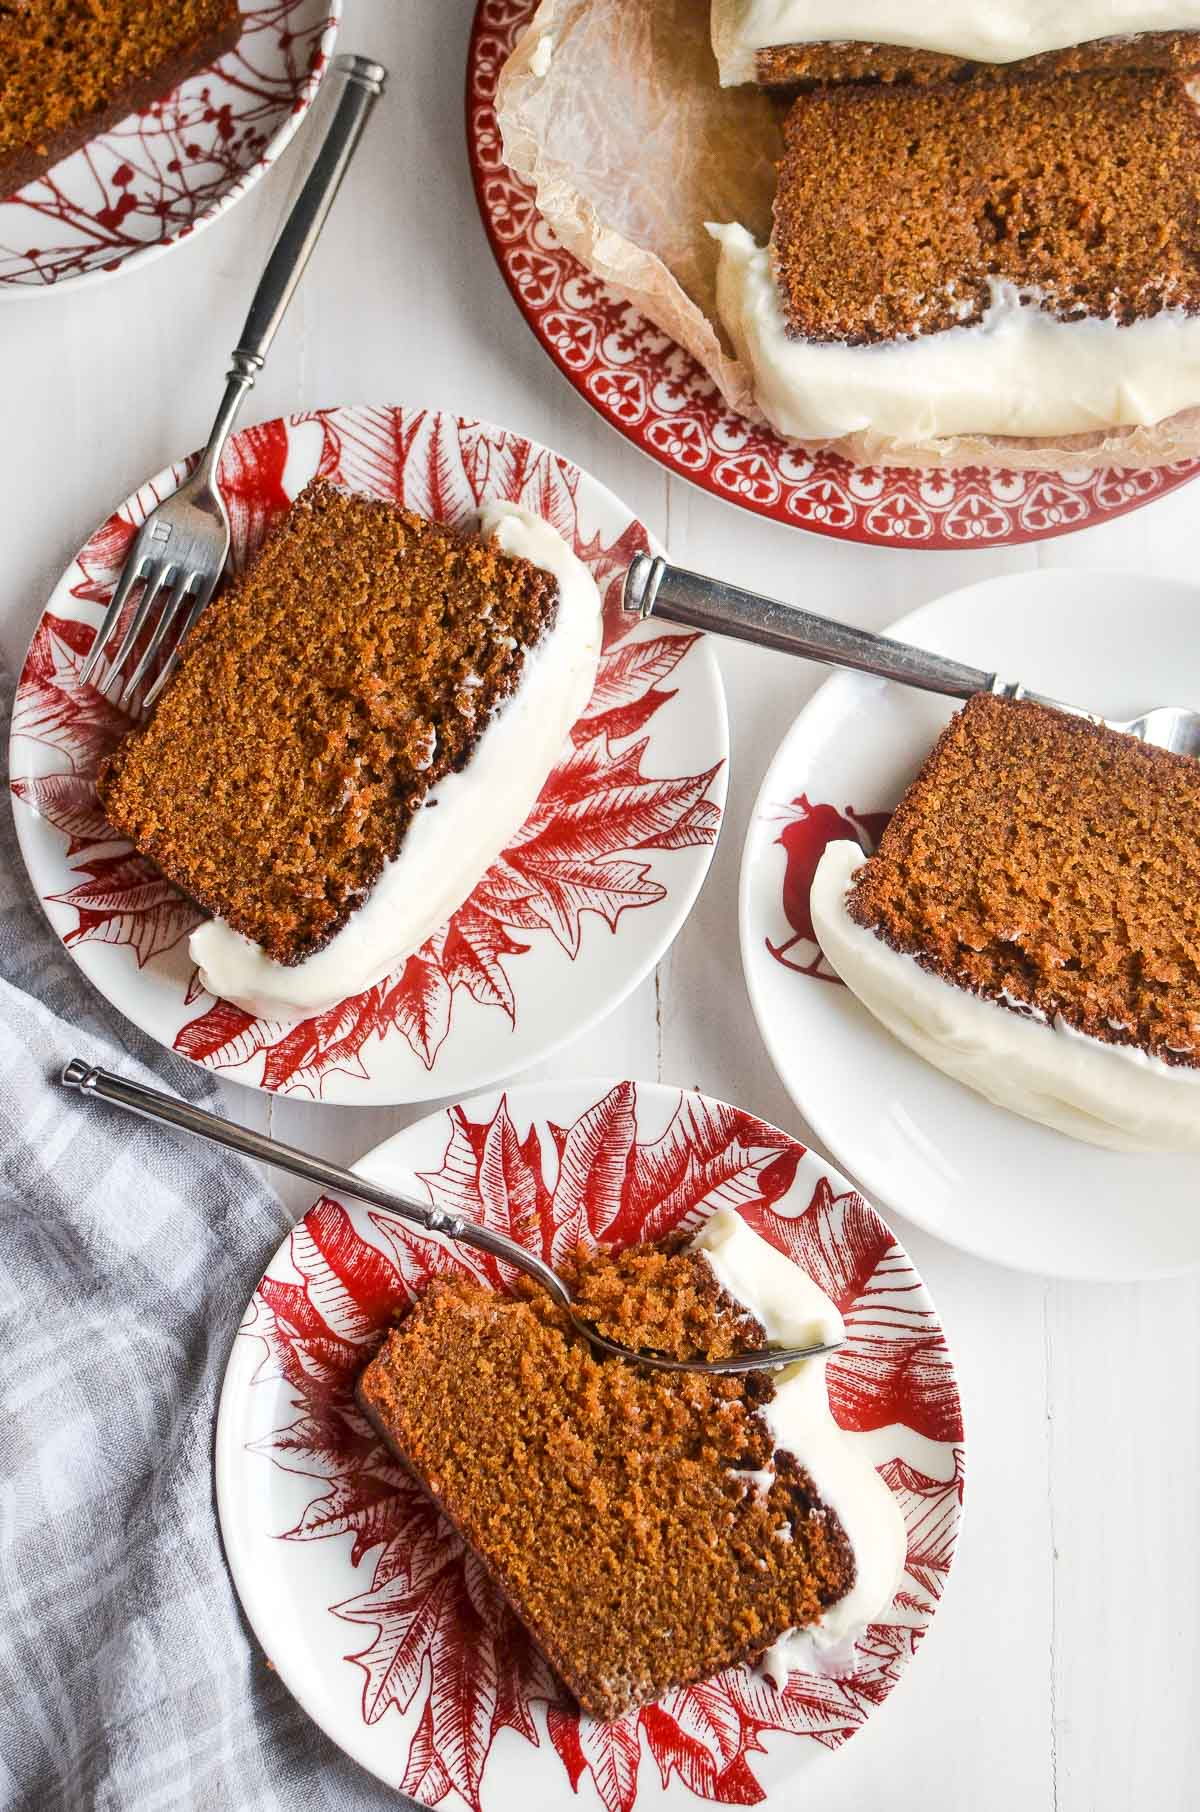 gingerbread loaf cake slices on festive red and white plates